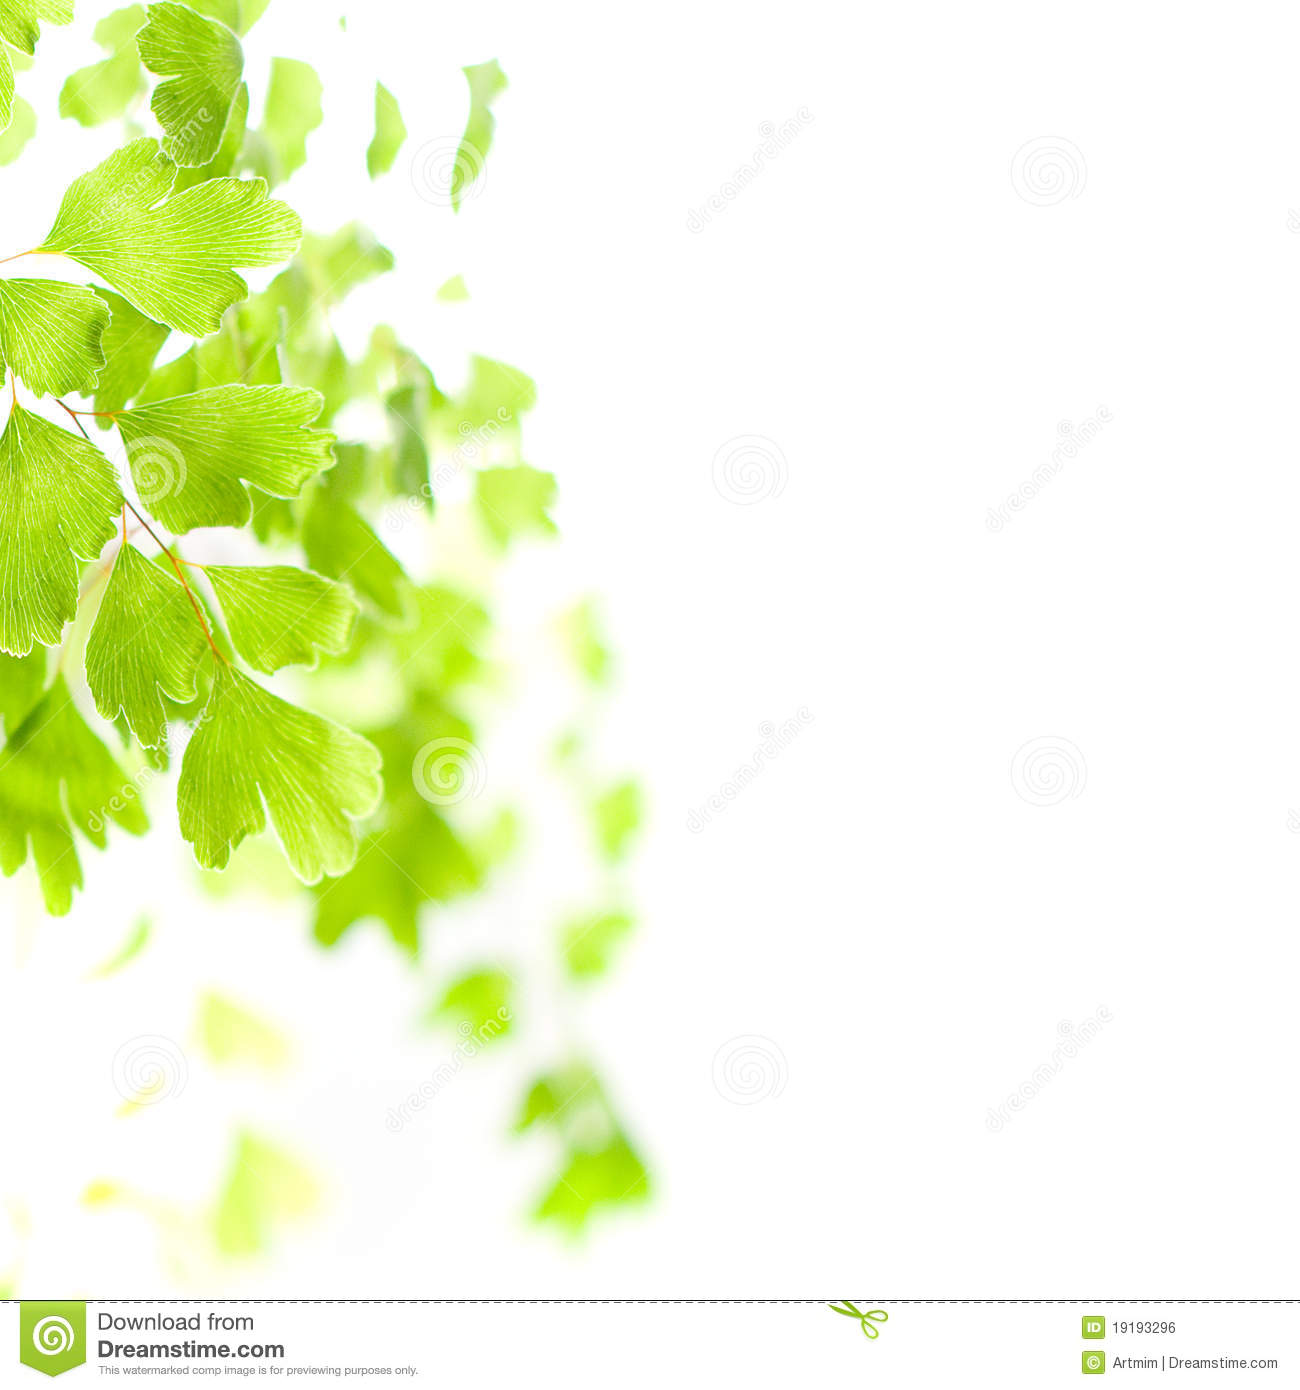 light green leaves background - photo #16